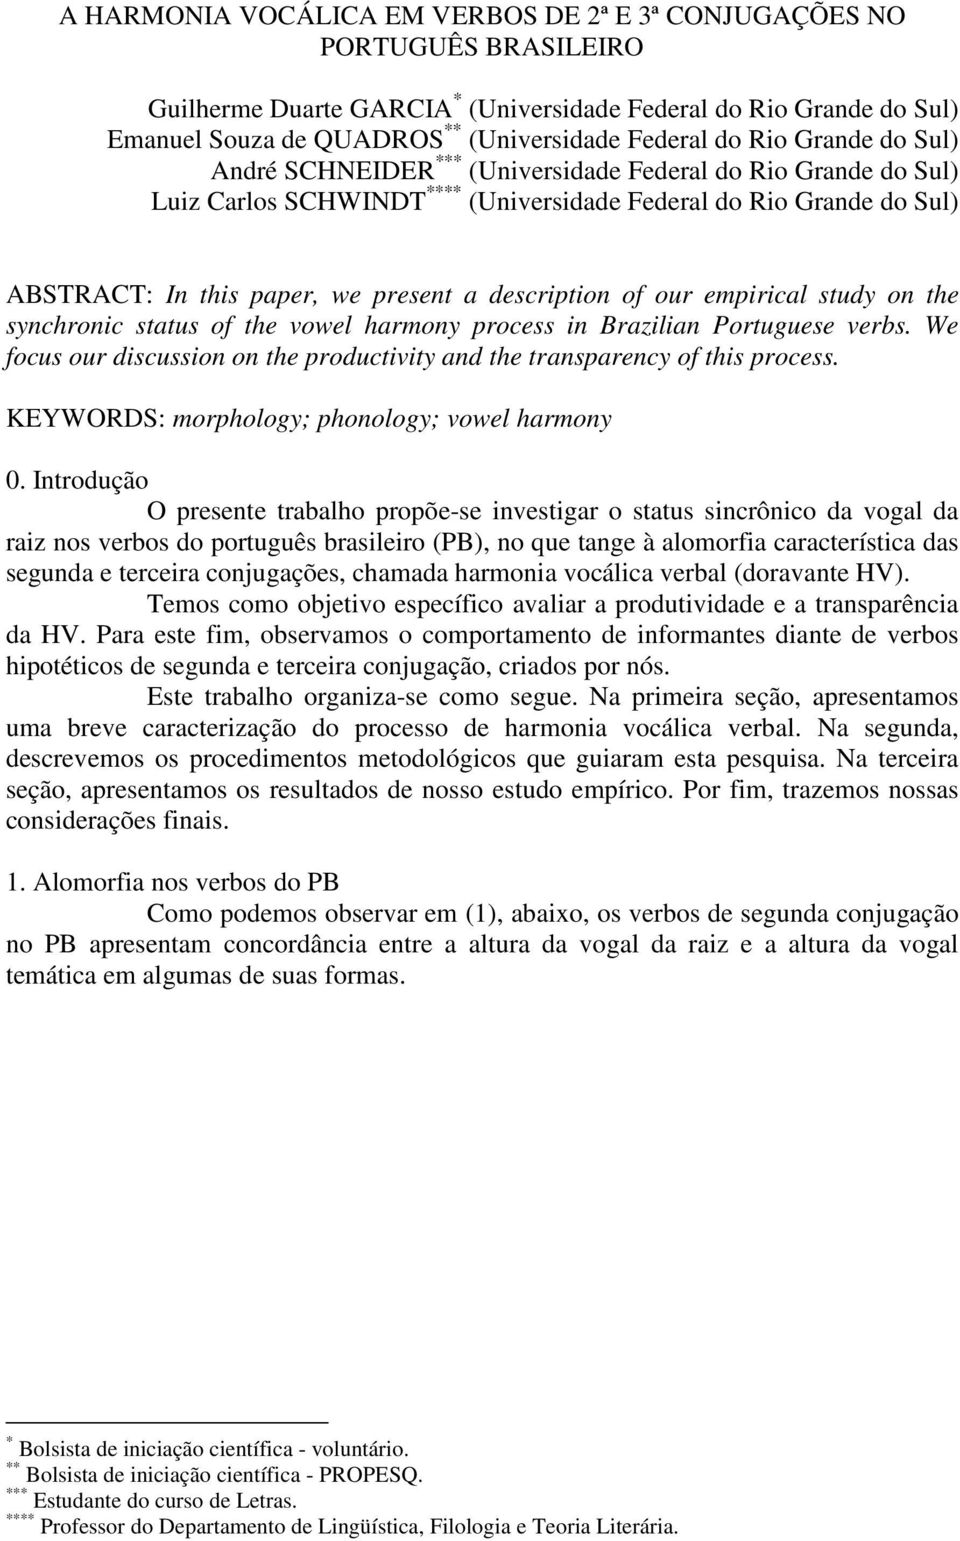 description of our empirical study on the synchronic status of the vowel harmony process in Brazilian Portuguese verbs.